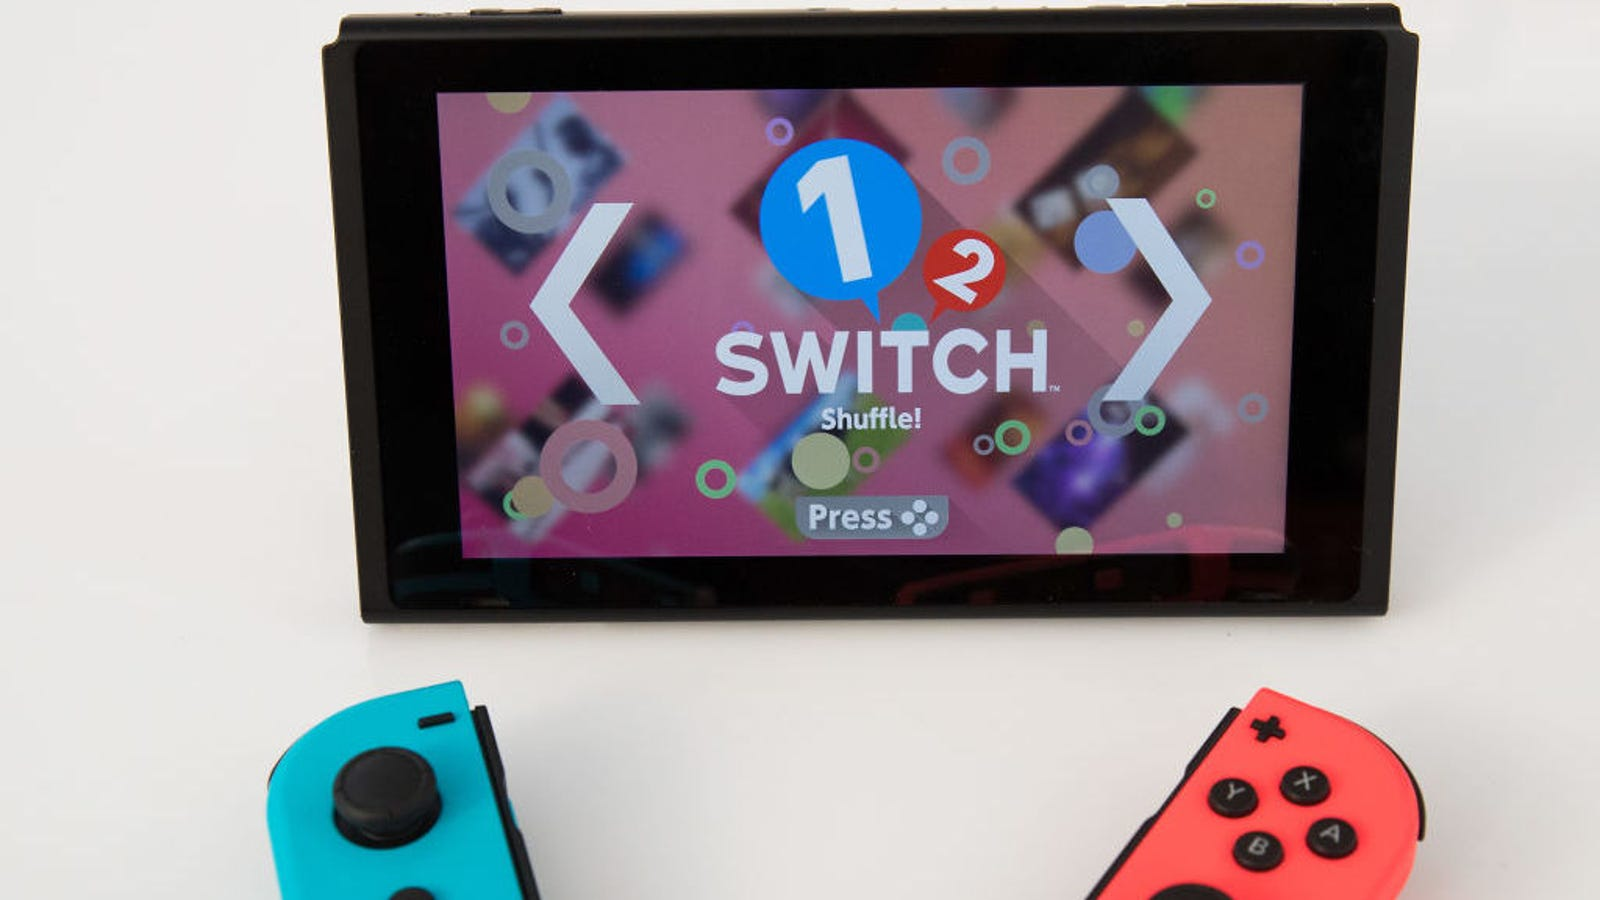 How To Add Friends Your Nintendo Switch Switches We Have Options One Way Is A Like This